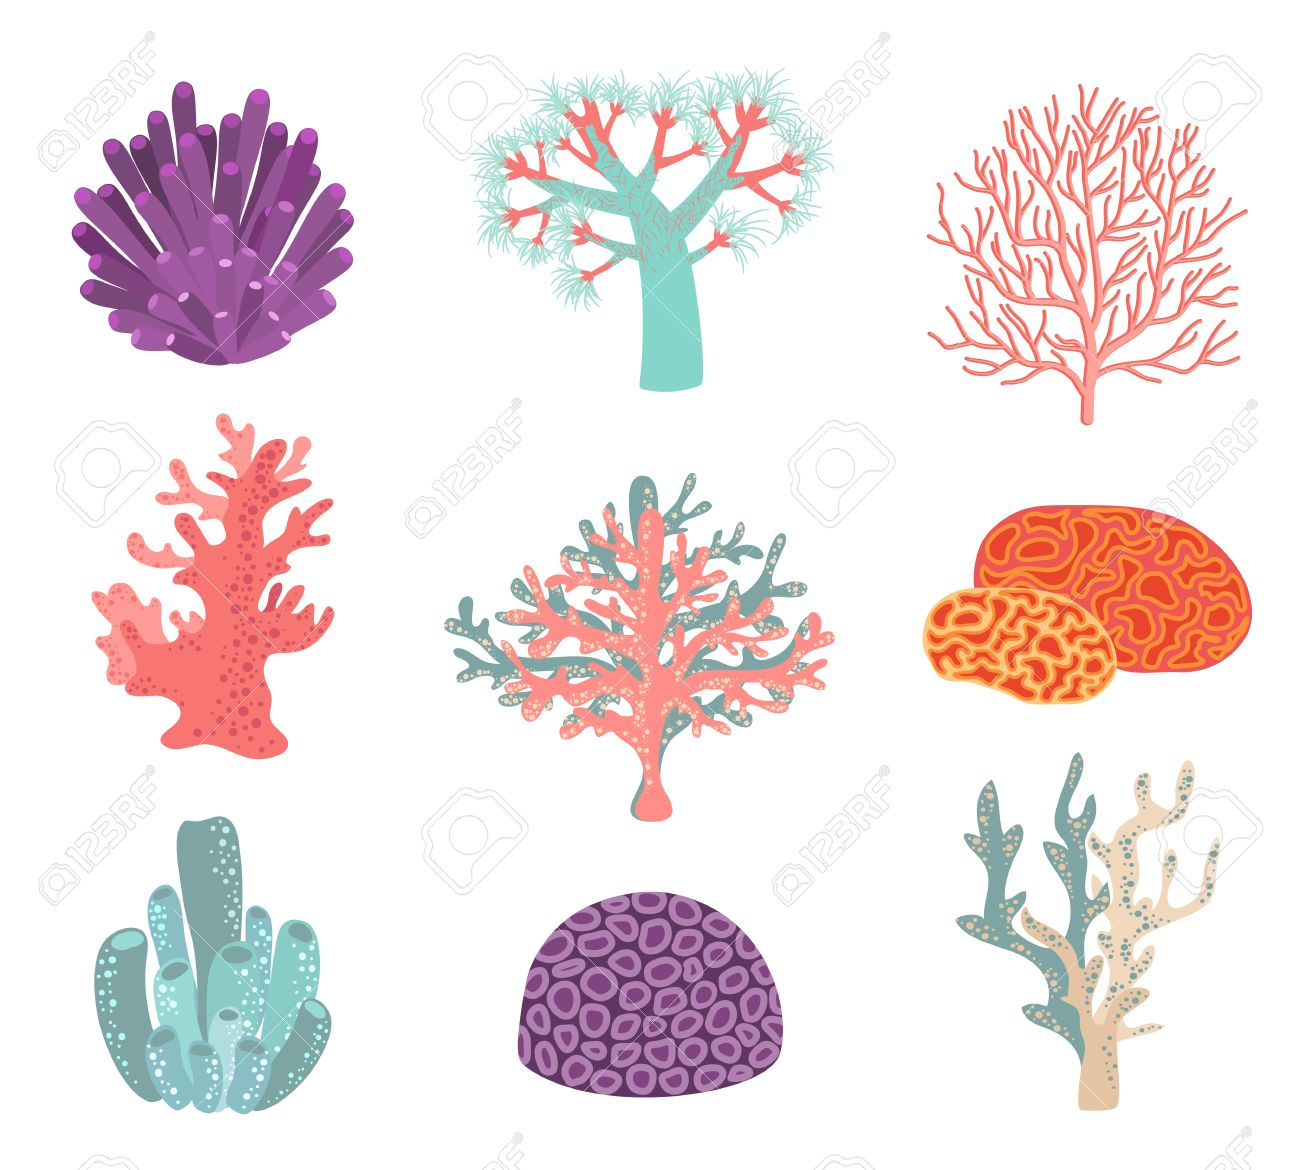 coral isolated stock photos royalty free coral isolated images